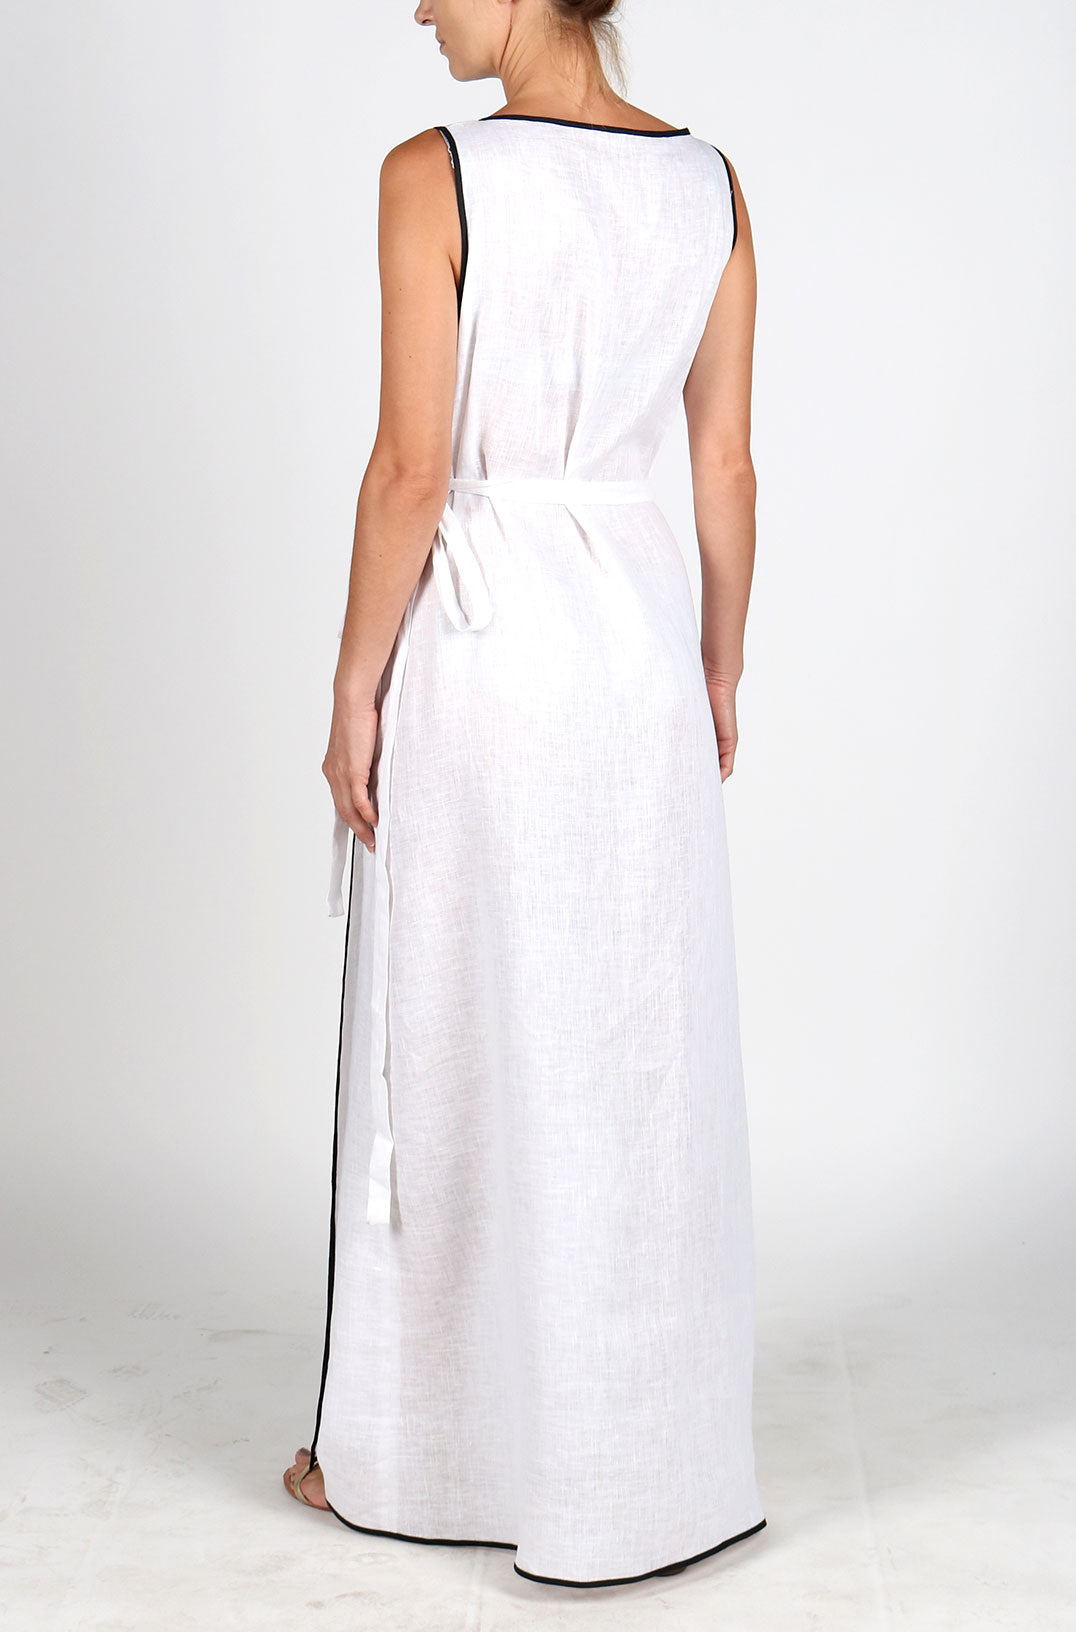 Fanm Mon HEATHER White Linen Peacock Feathers Embroidery Vyshyvanka MAXI Dress size XS-XXL